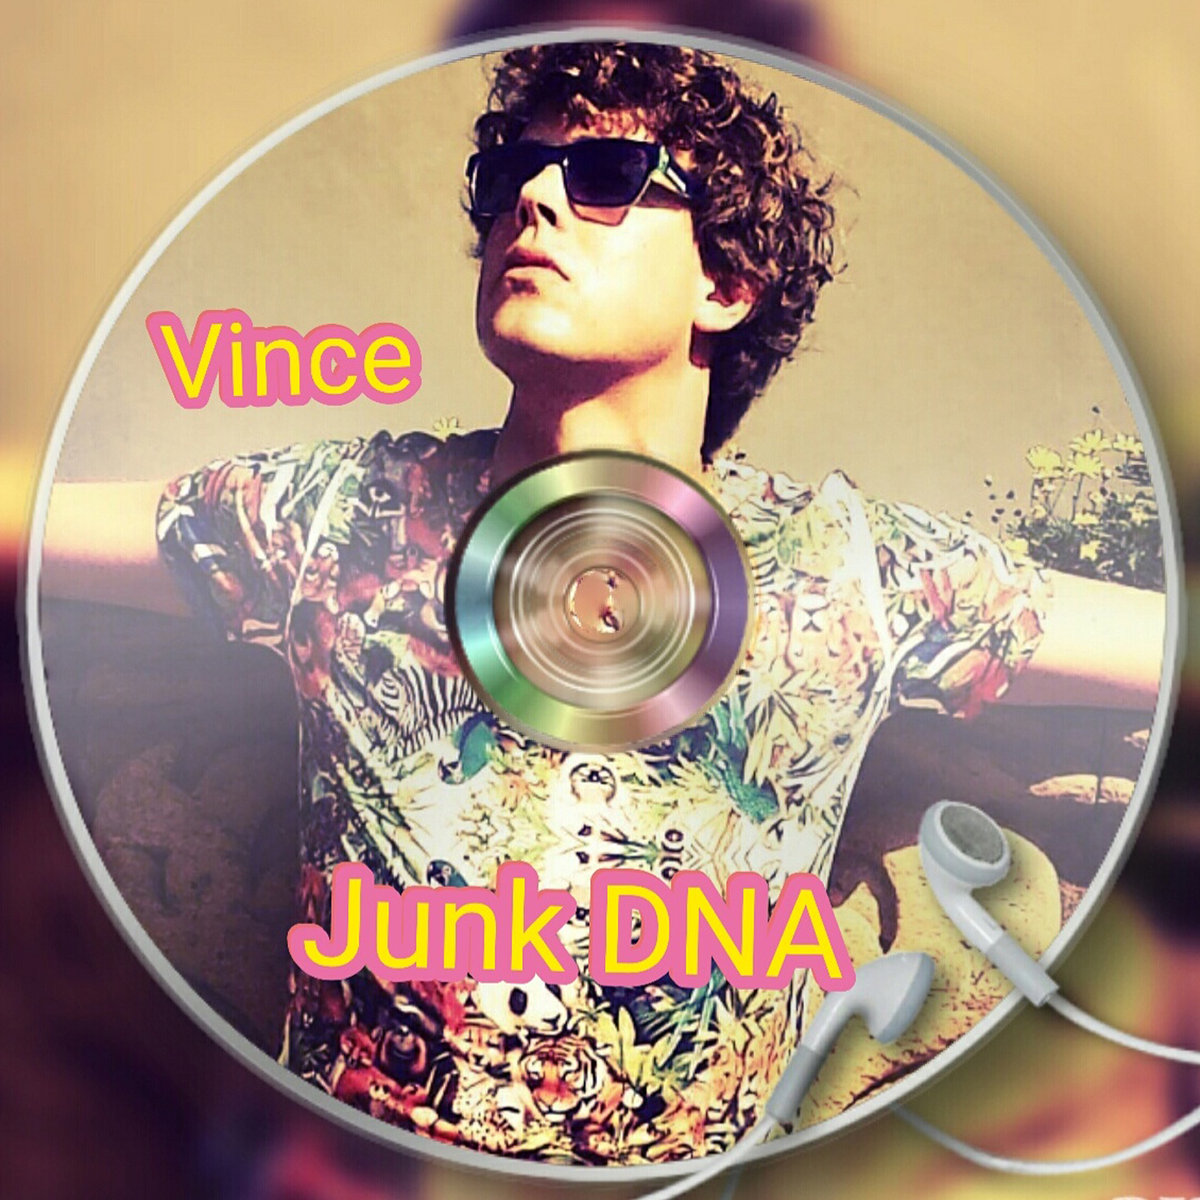 Vince - Crossroads @ 'Junk DNA' album (pop, pop punk)